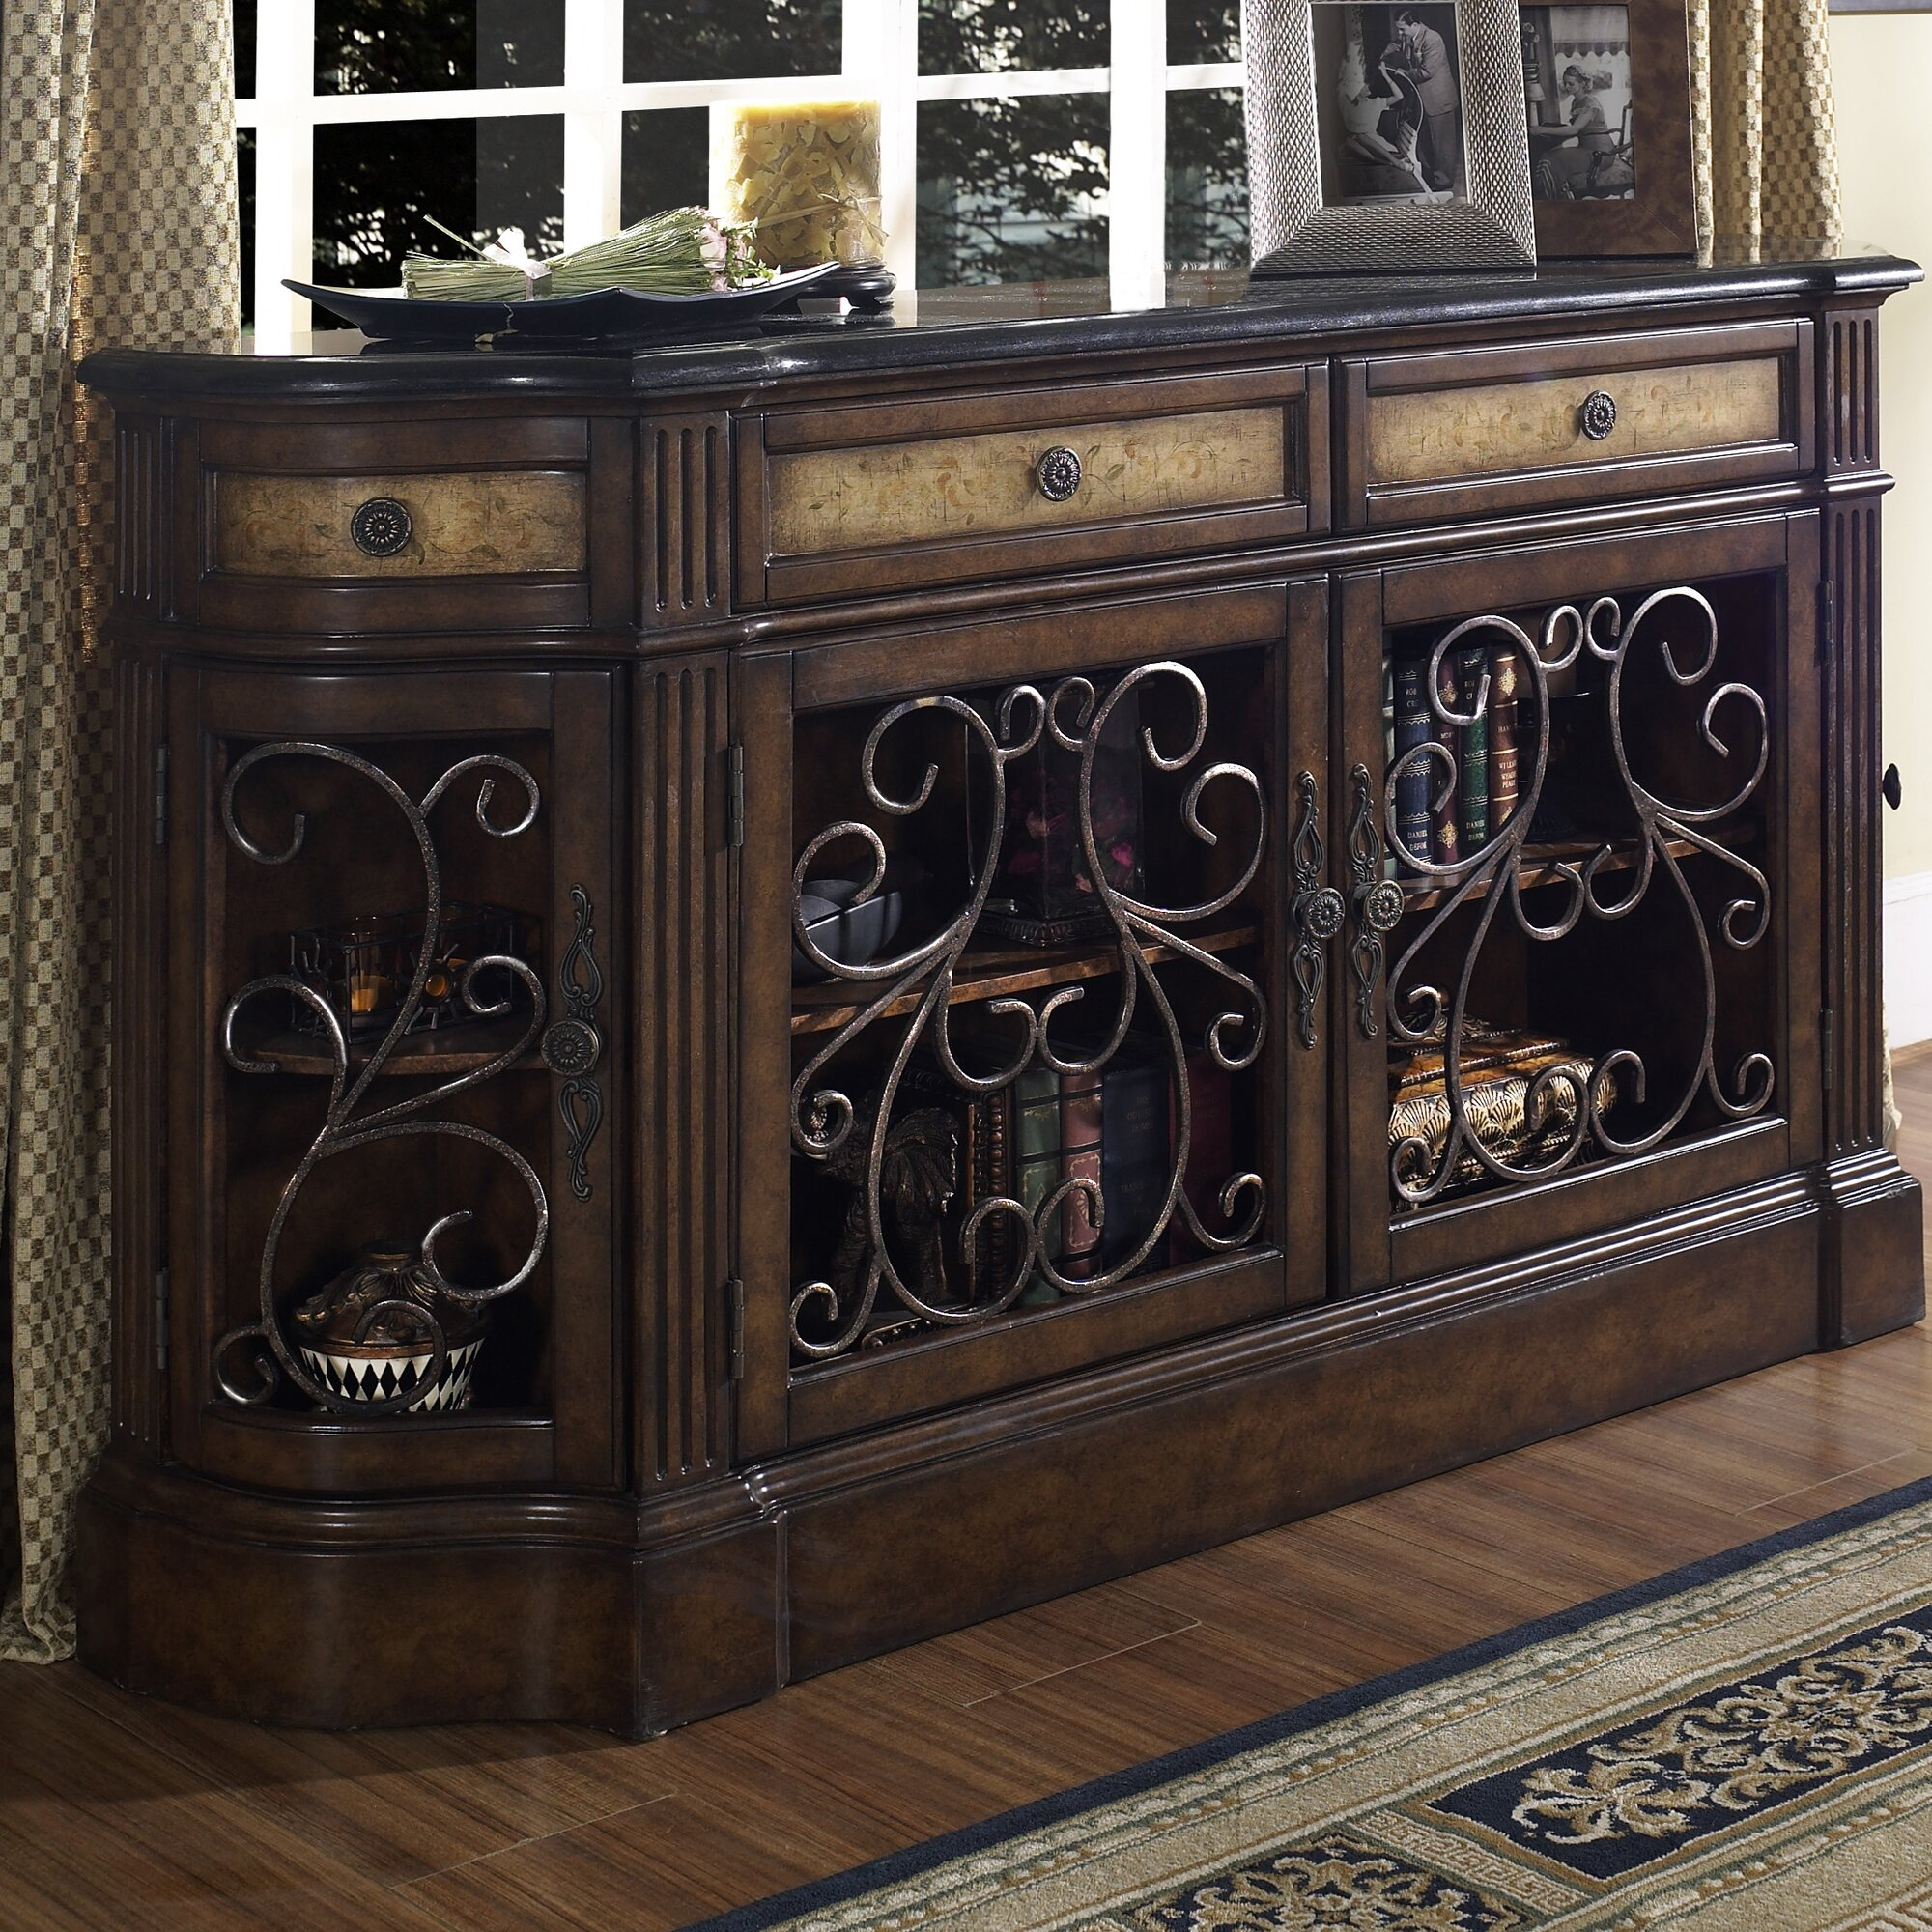 Credenza Dining Room: Astoria Grand Selside Sideboard & Reviews